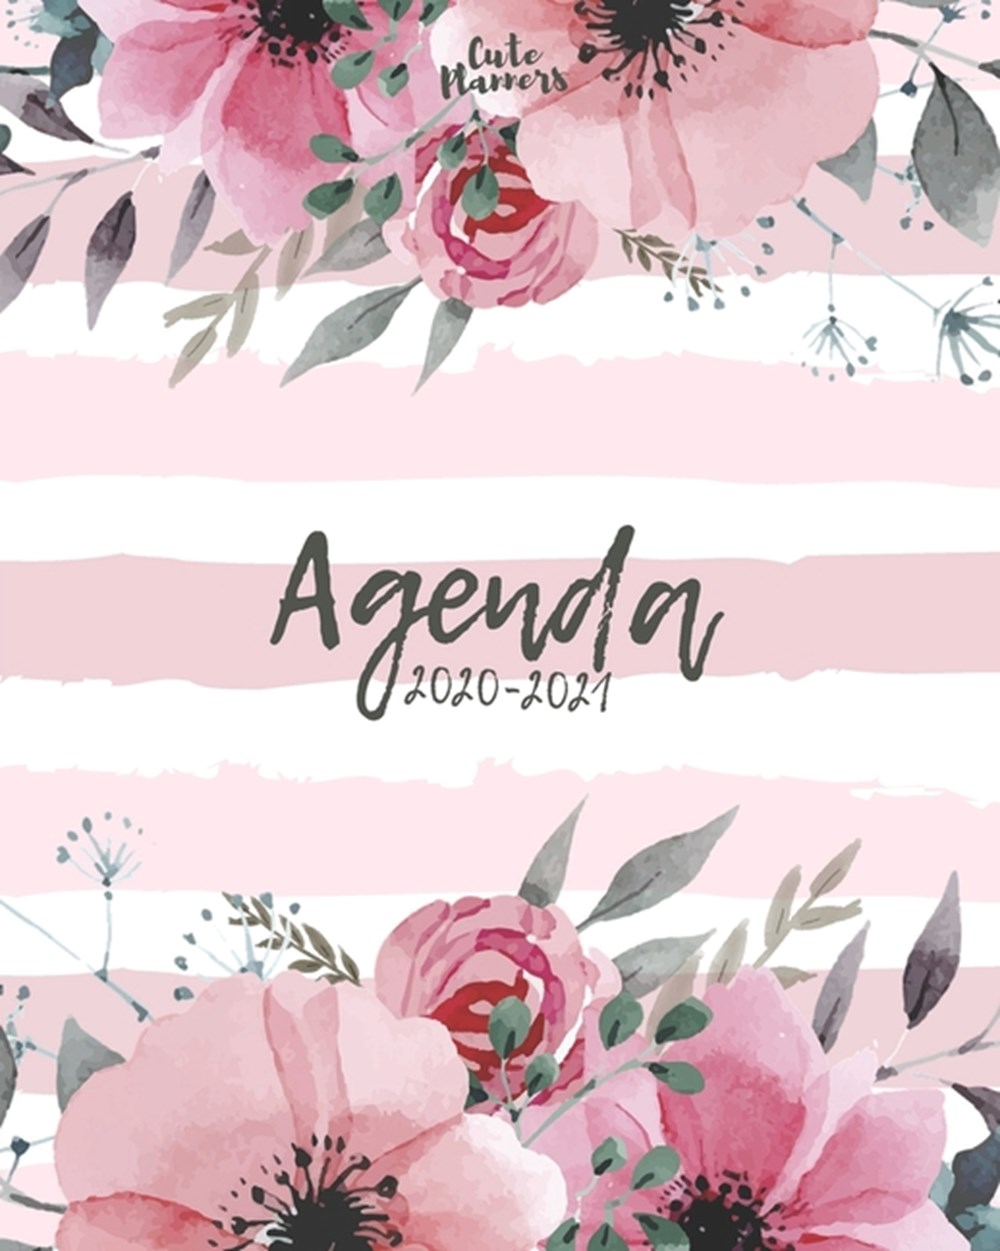 Agenda 2020-2021 Agenda 2020 -2021: Cute Planners / Pretty White & pink floral Two Year Daily Weekly